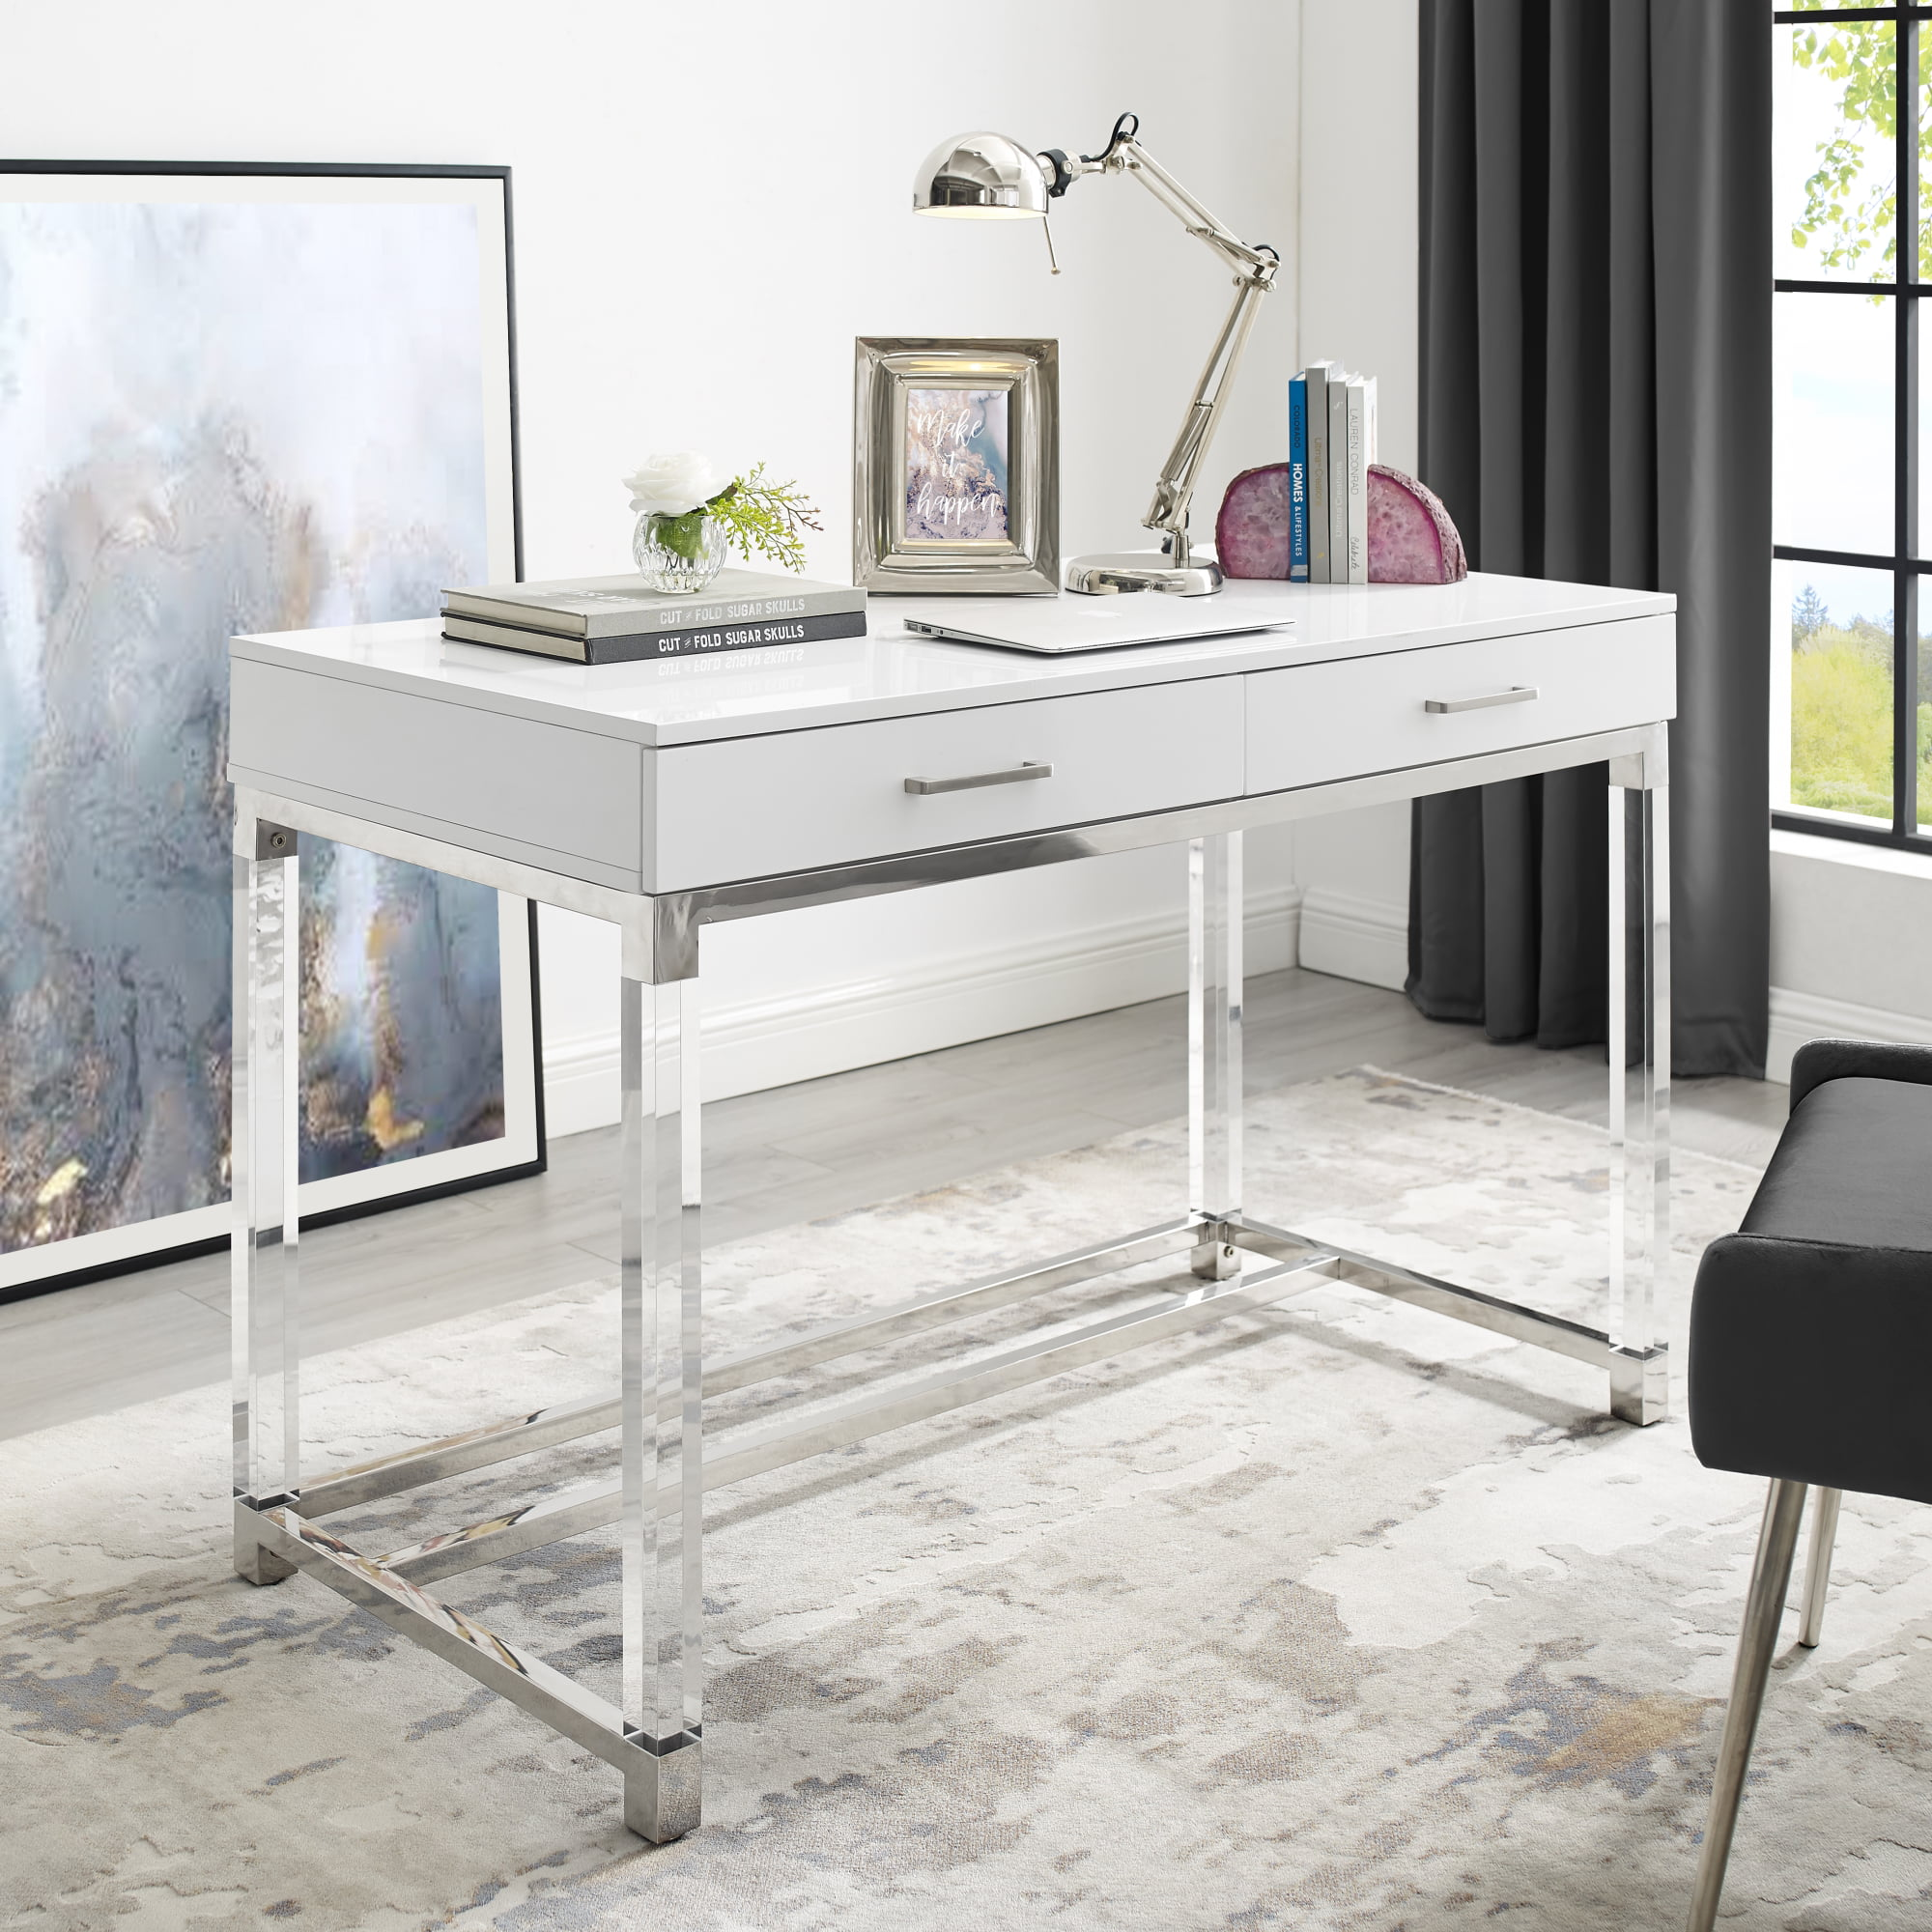 Alena White Writing Desk - 2 Drawers | High Gloss | Acrylic Legs | Chrome Stainless Steel Base ...